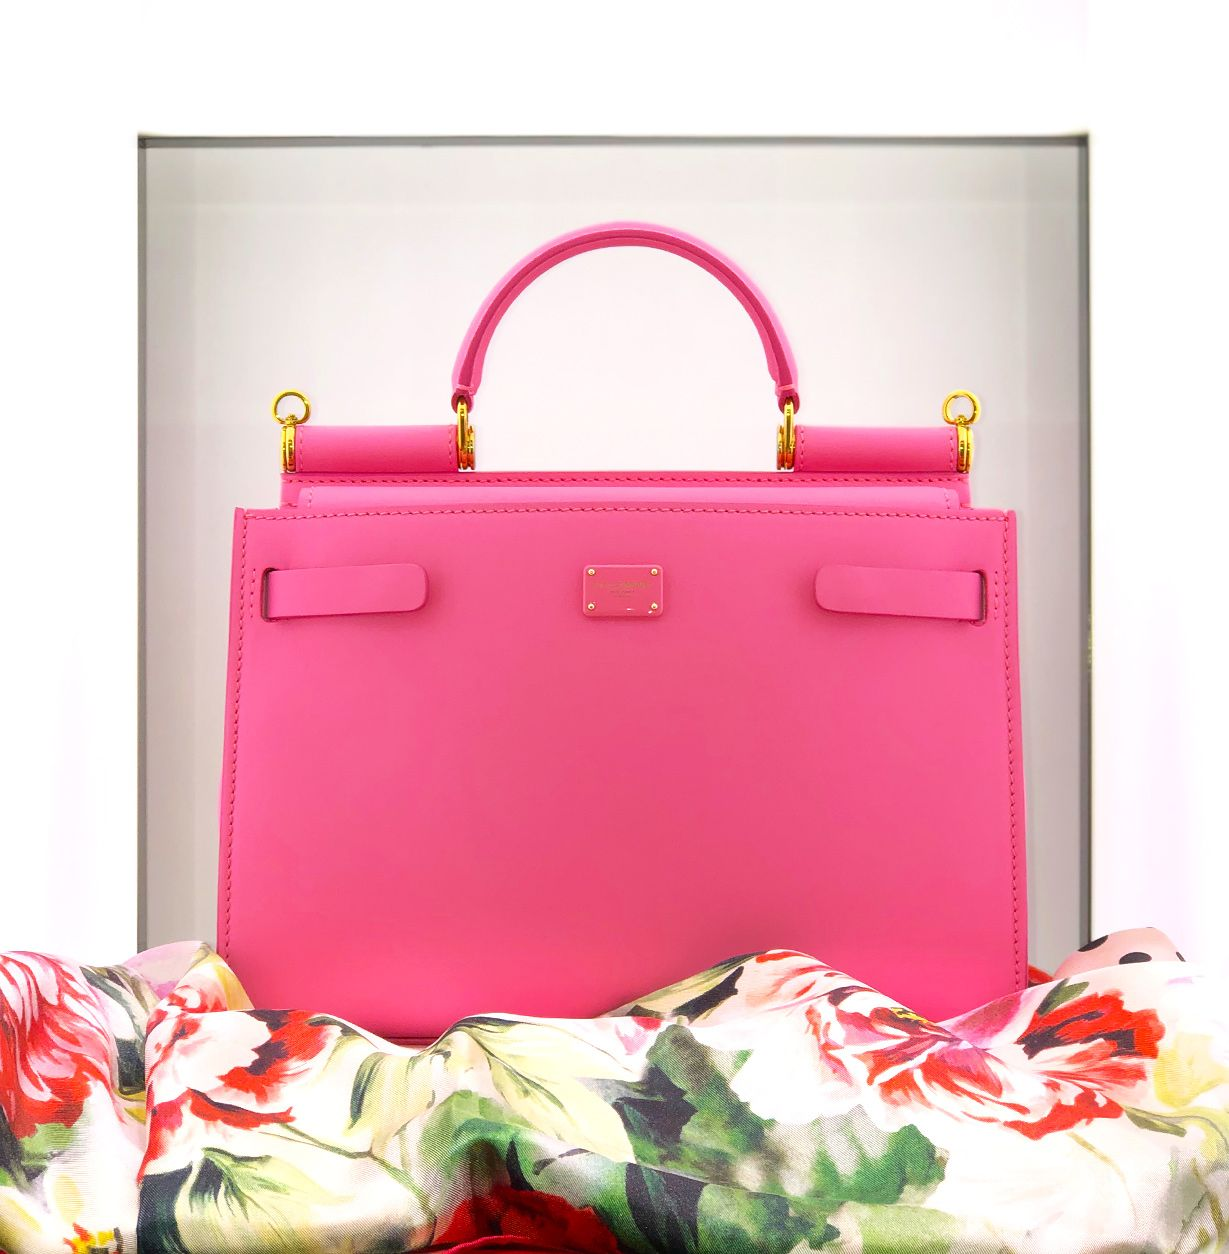 Dolce & Gabbana limited quantity Sicily 62 bag in pink